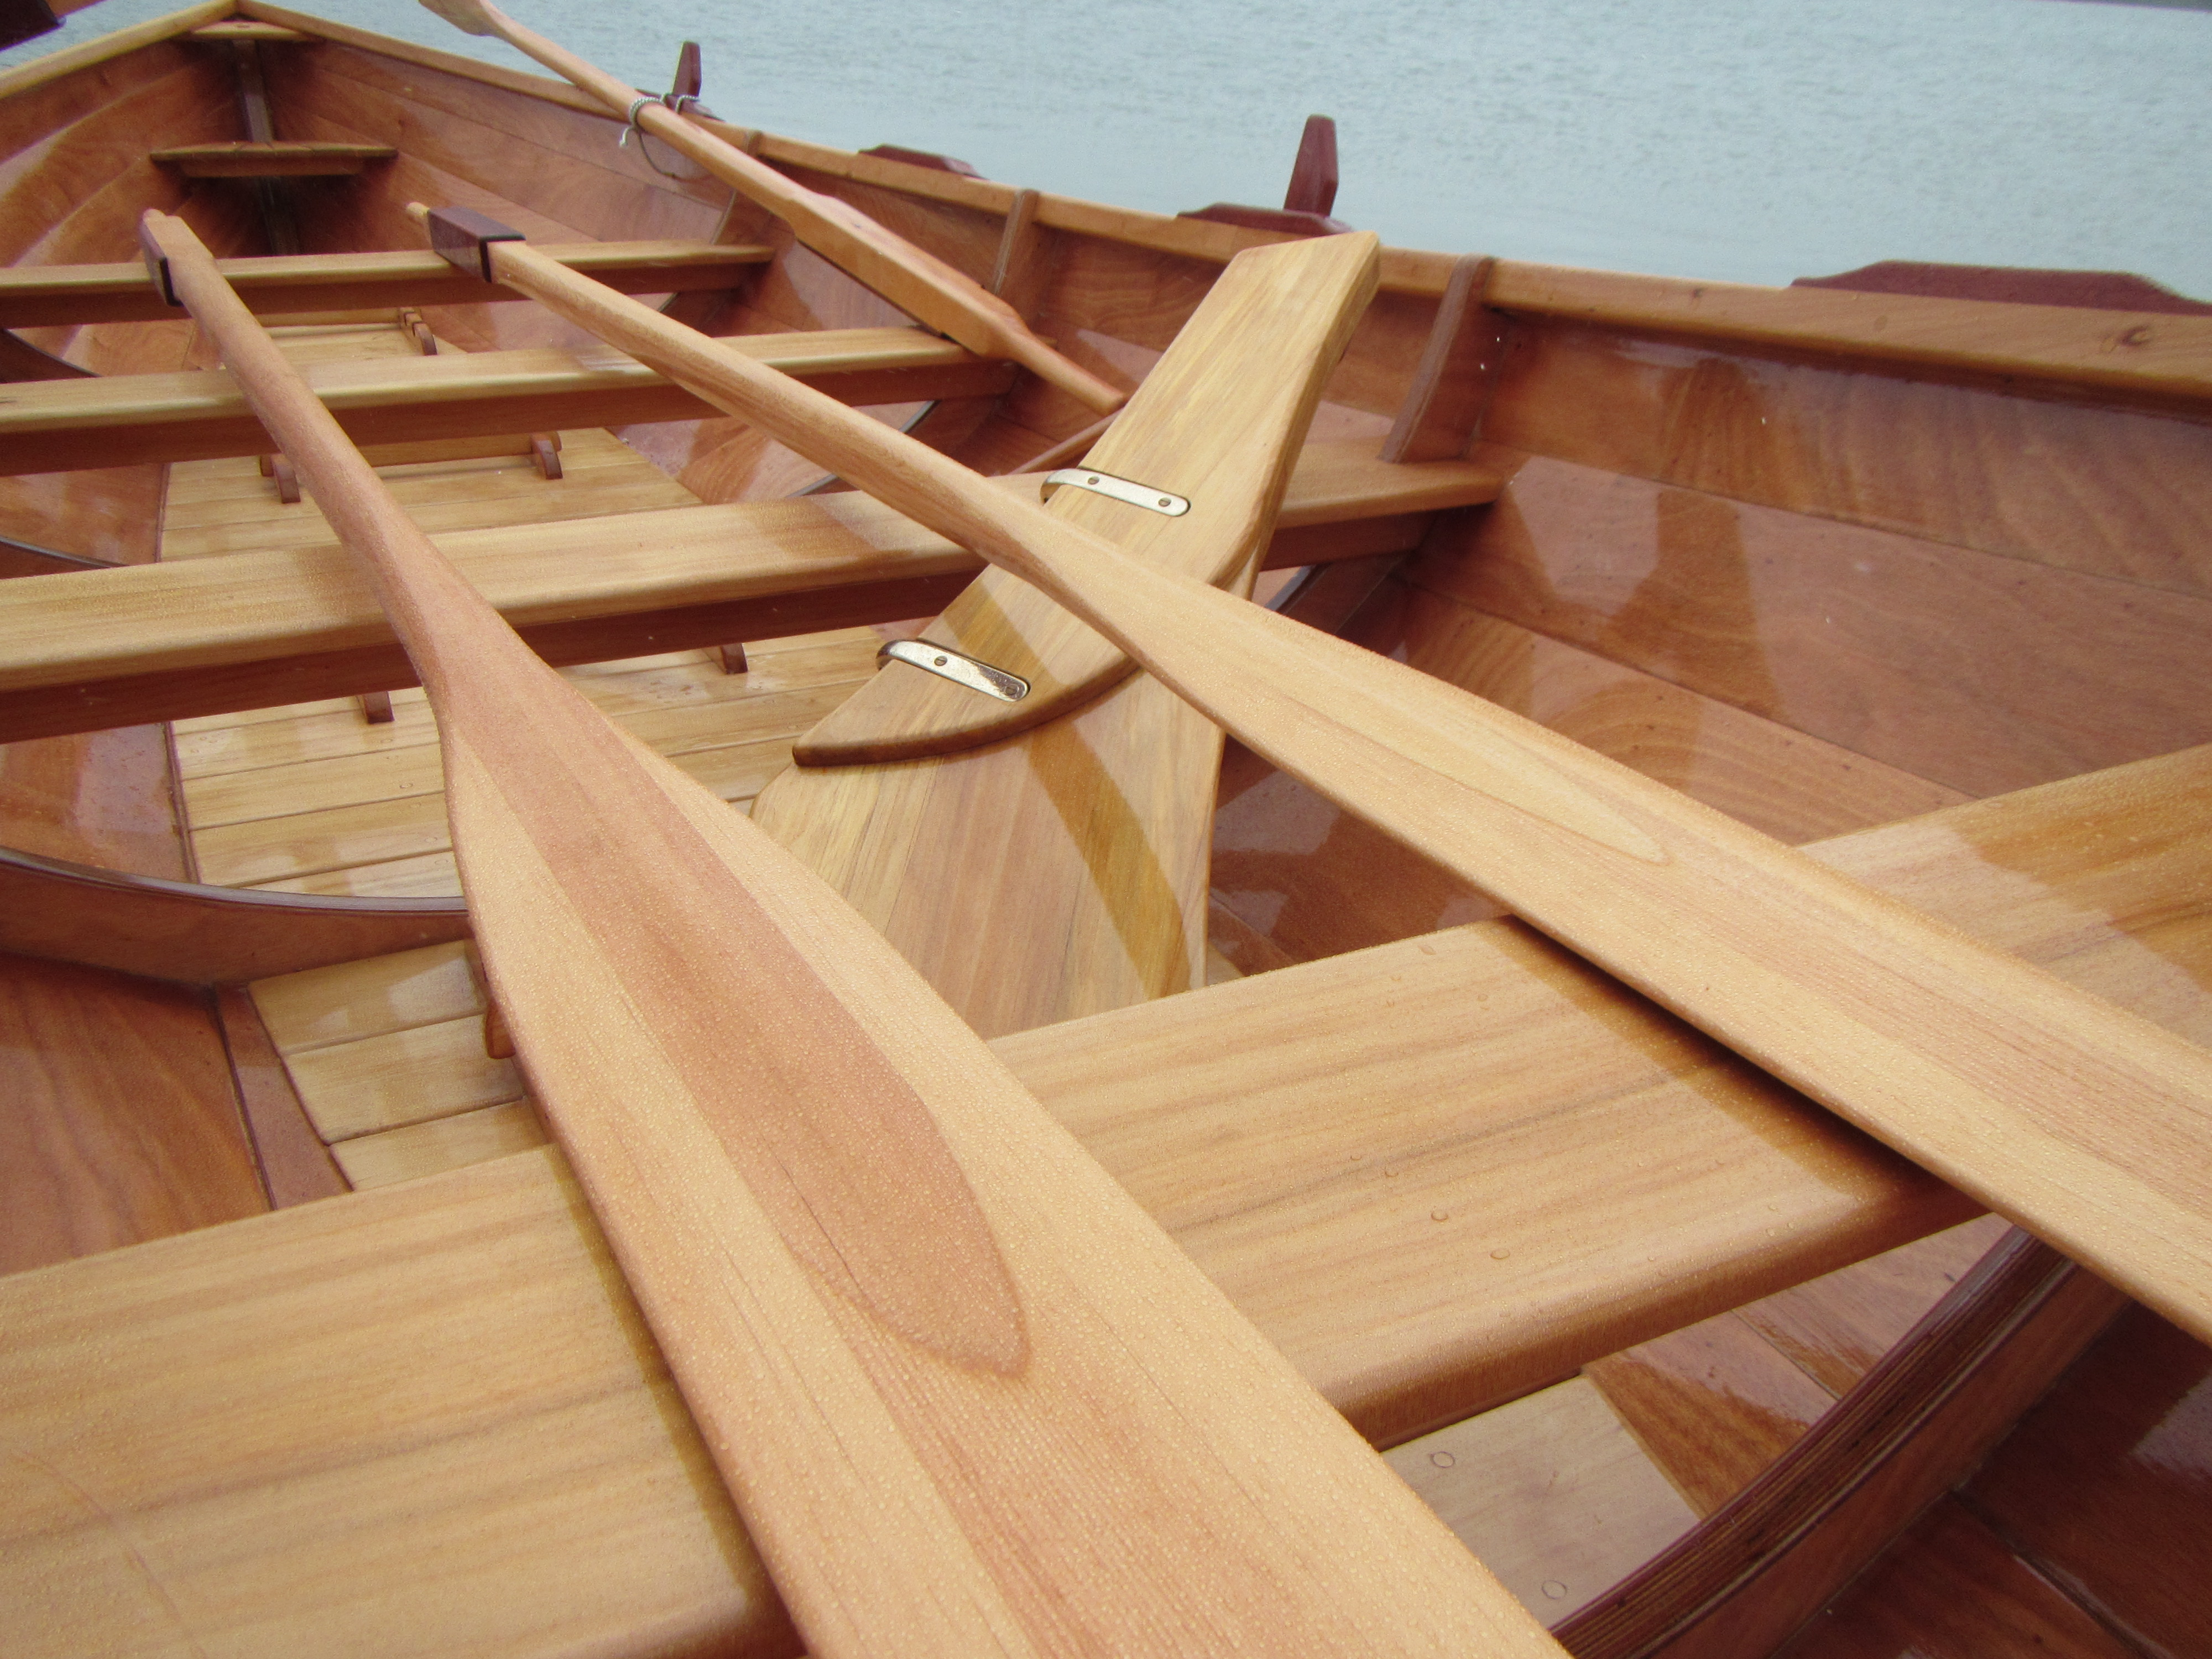 wooden boat plans nz